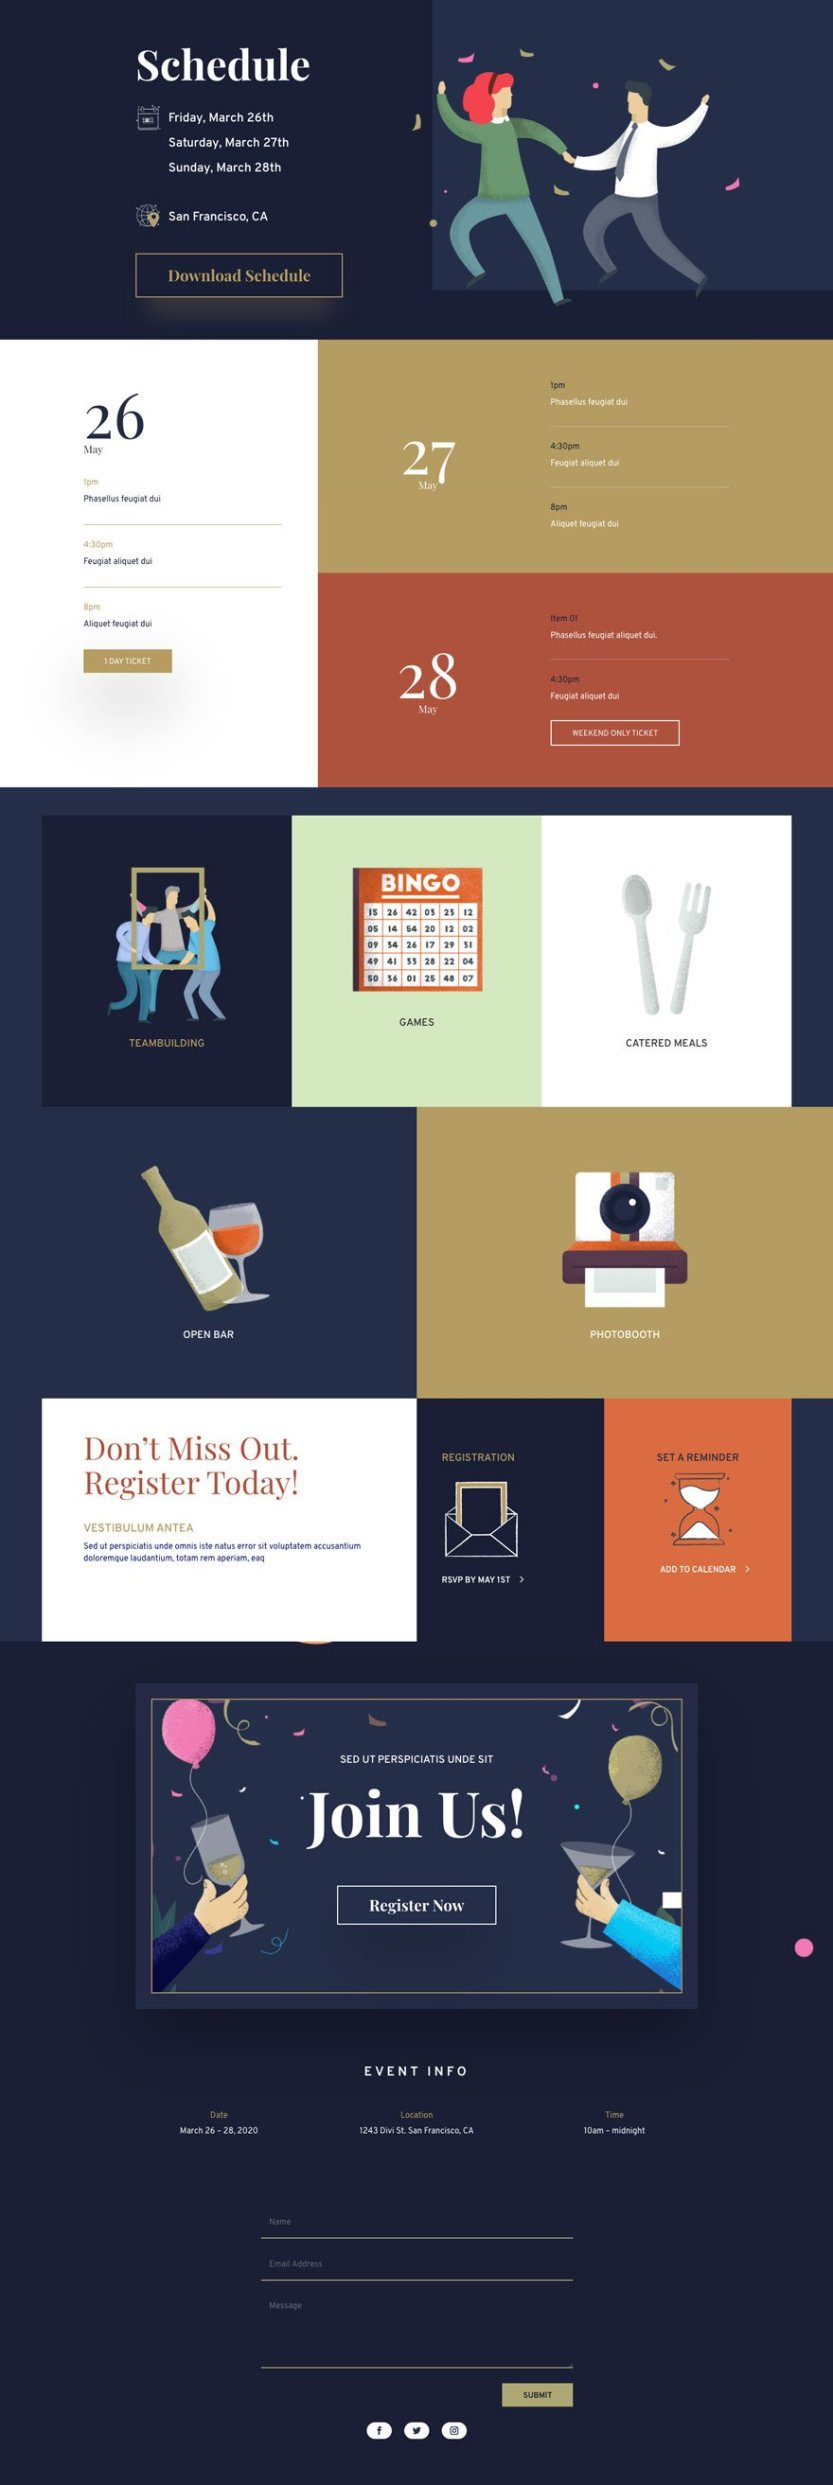 divi event layout pack